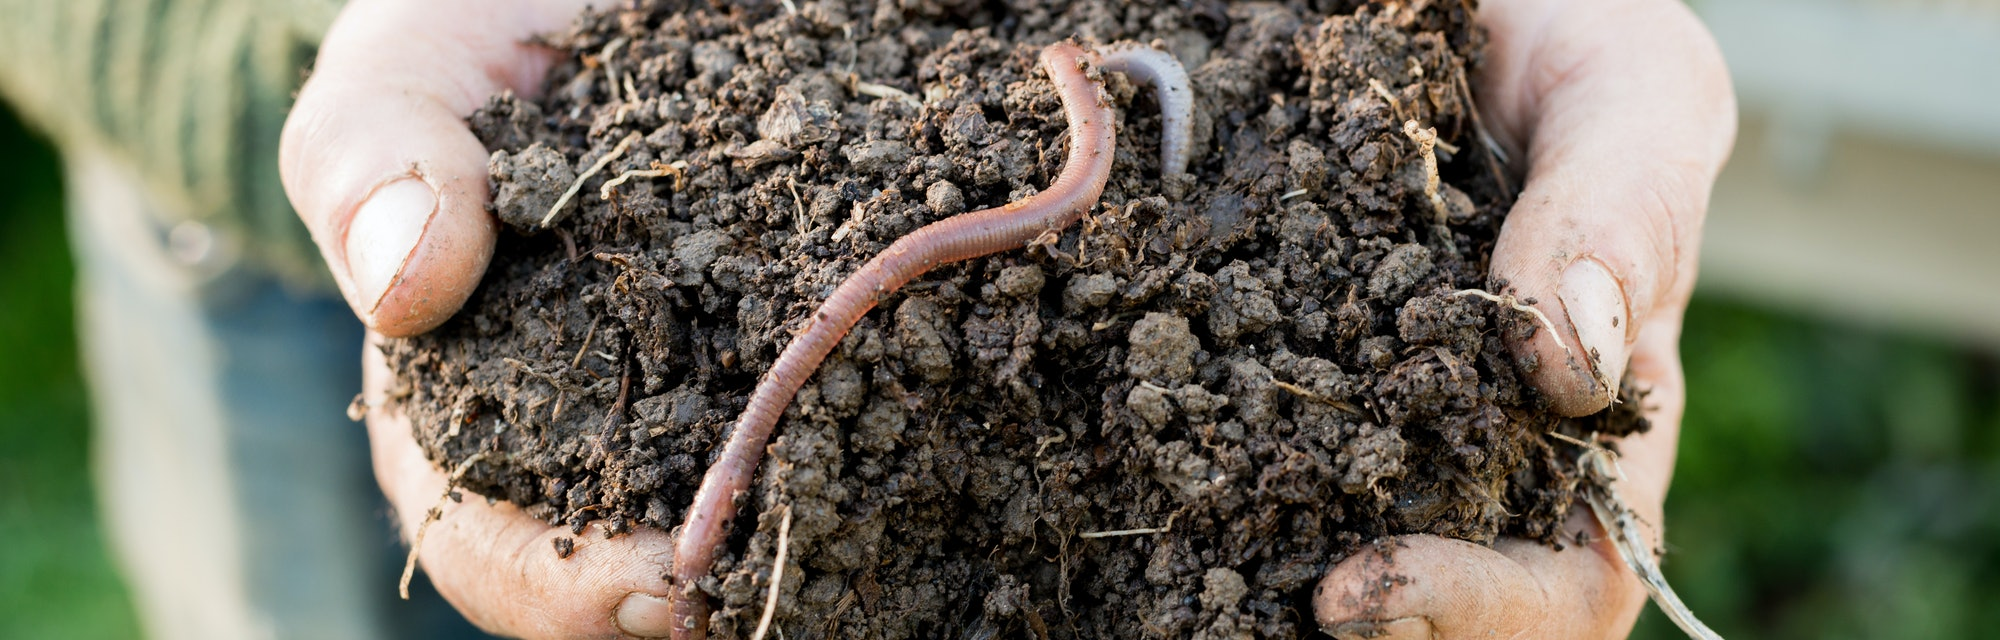 Earthworm on mound of dirt